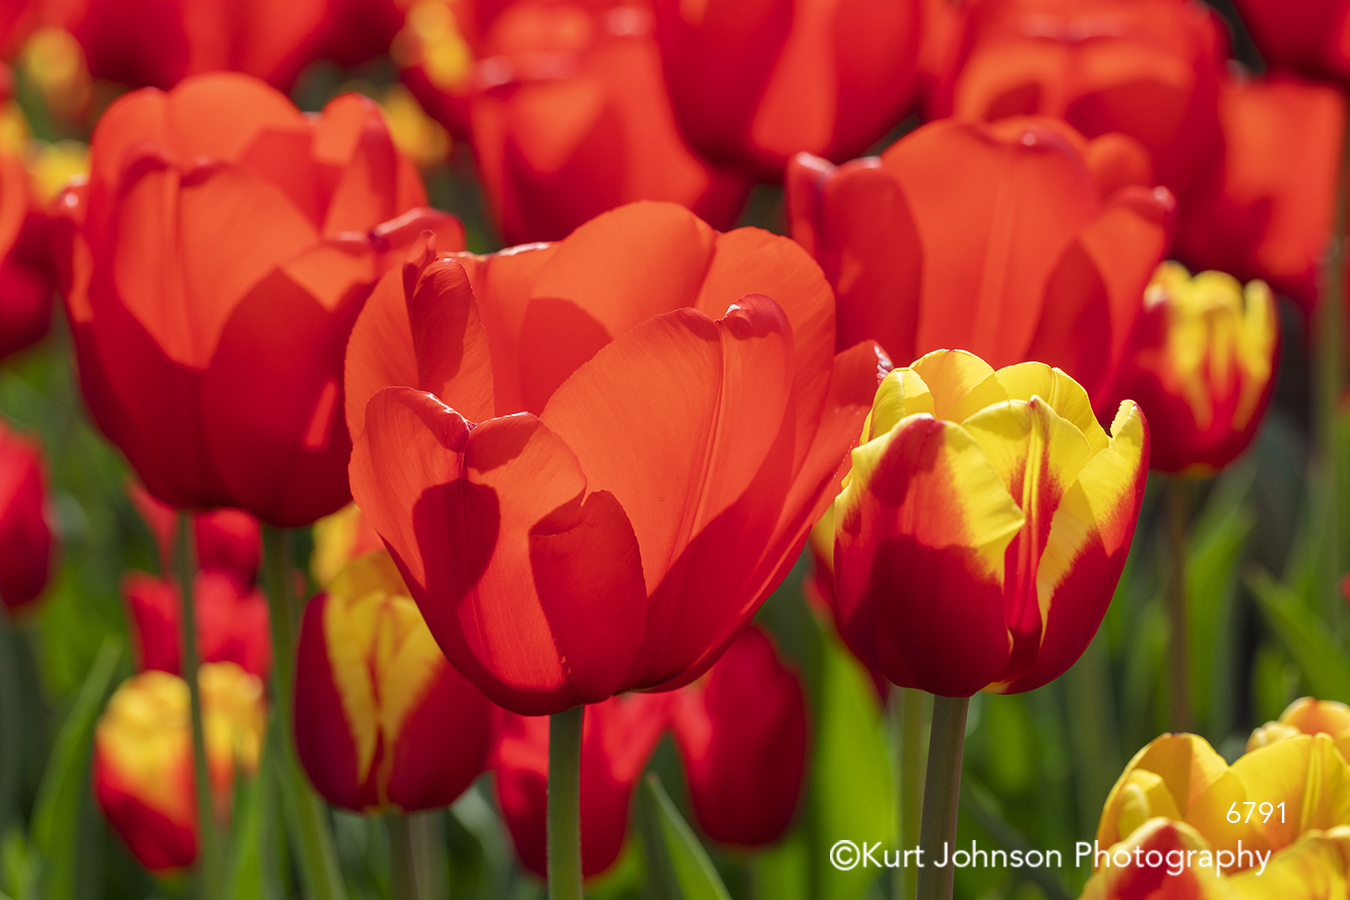 red yellow orange spring flower flowers close up field tulips meadow bright happy